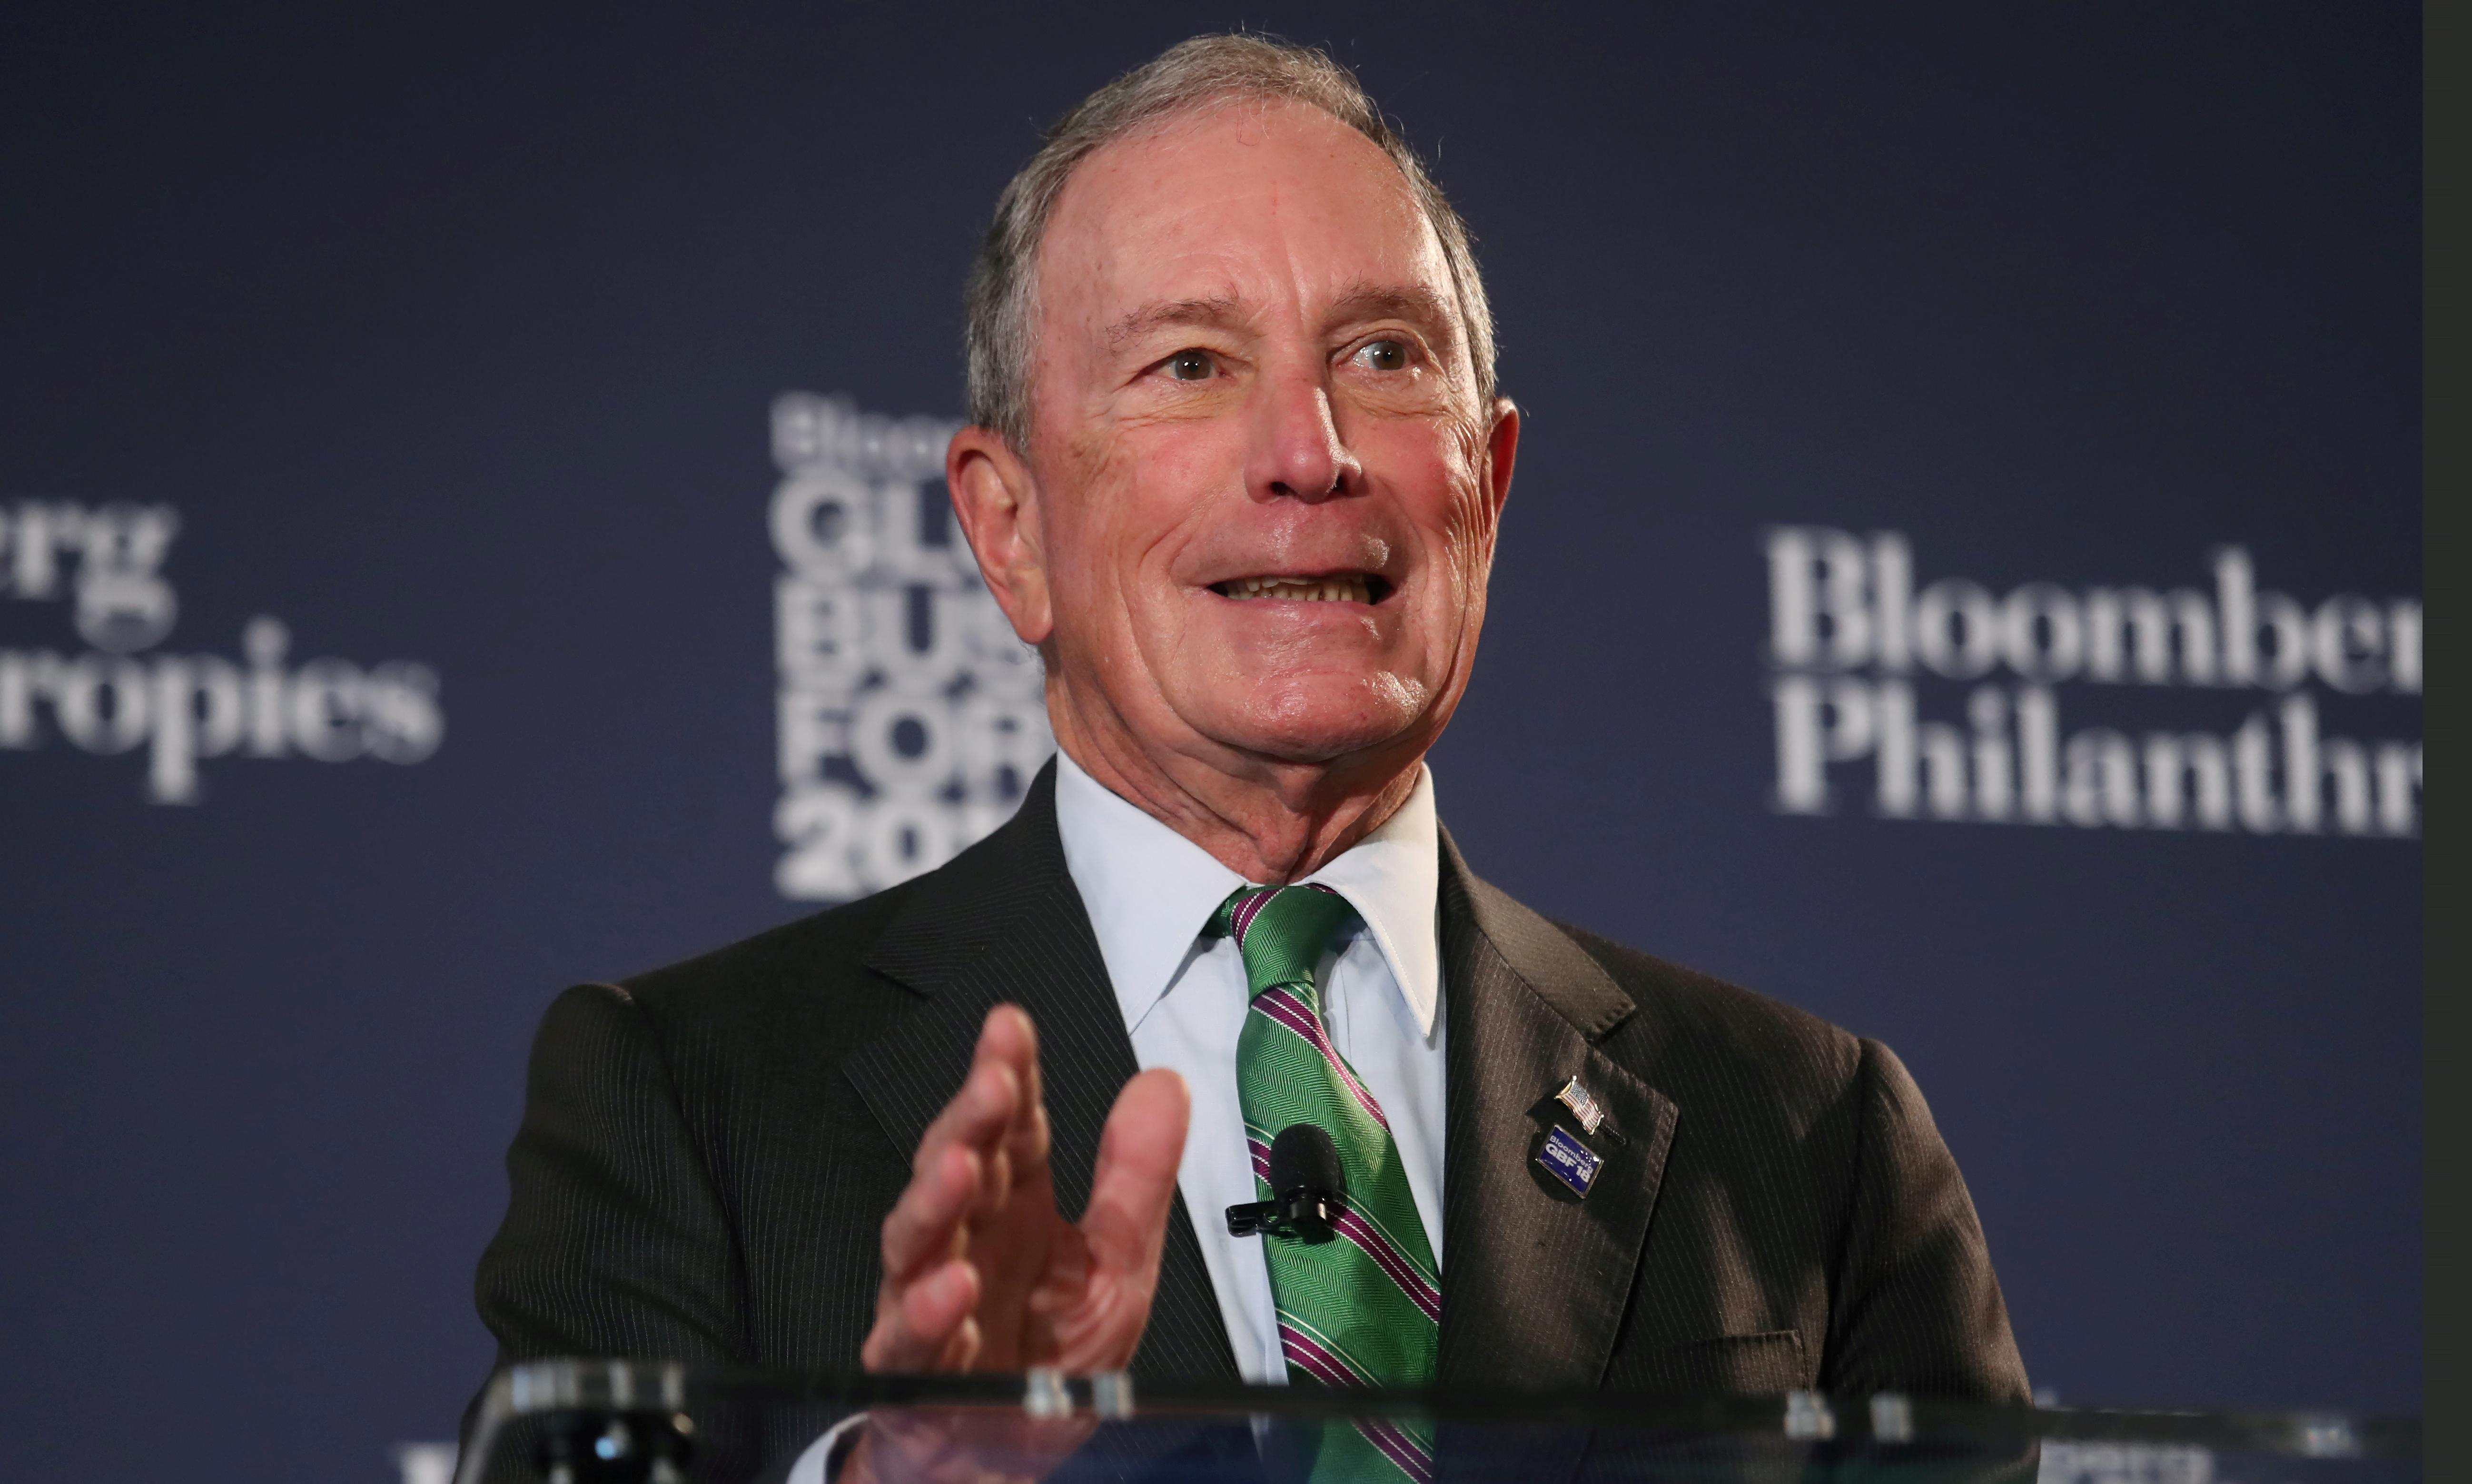 The problem with billionaires fighting climate change is the billionaires